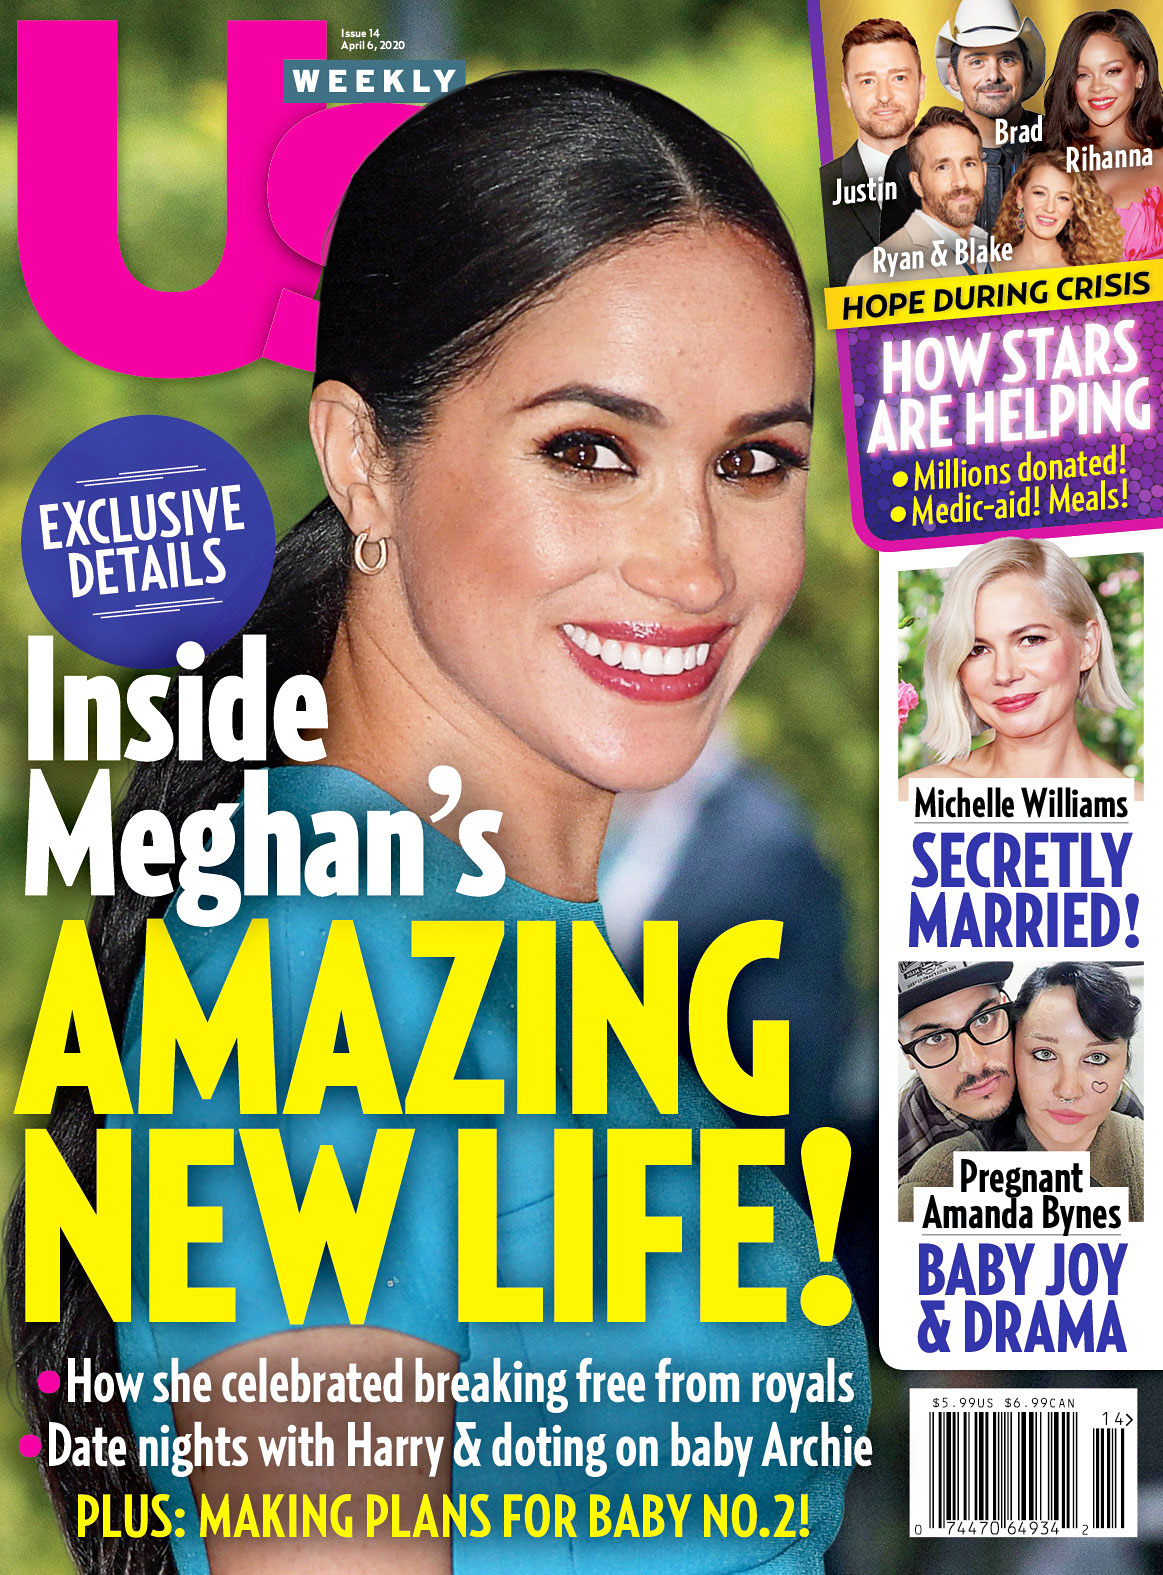 Us Weekly Cover Issue 1420 Meghan Markles Amazing New Life